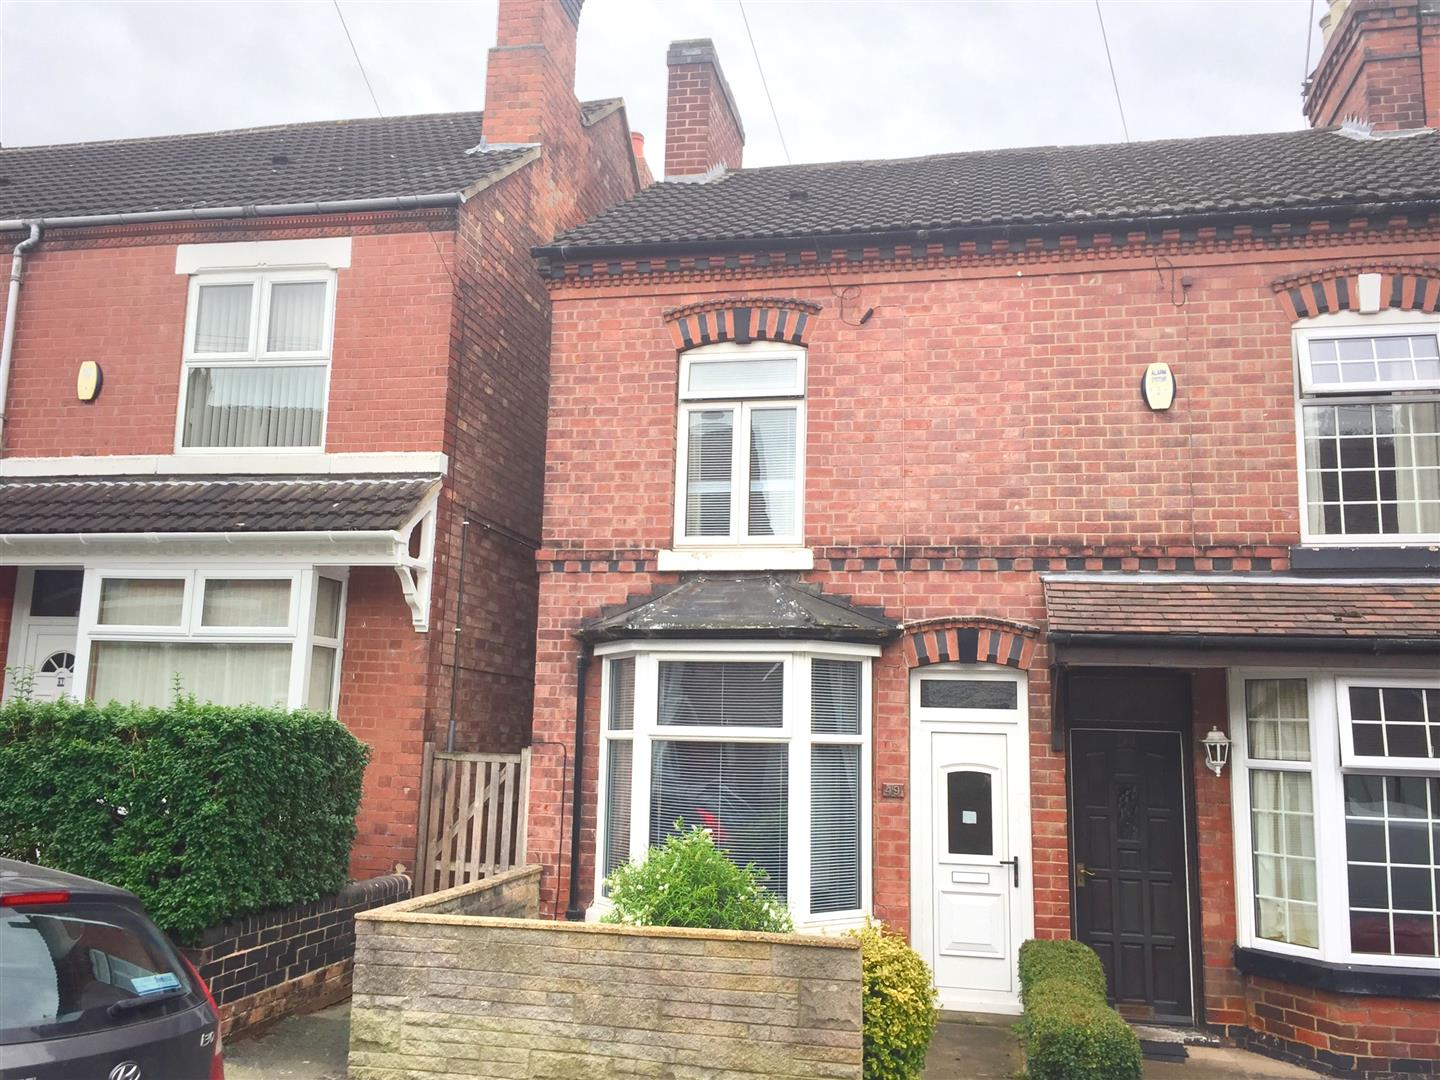 3 Bedrooms Terraced House for sale in Frederick Street, Burton-On-Trent